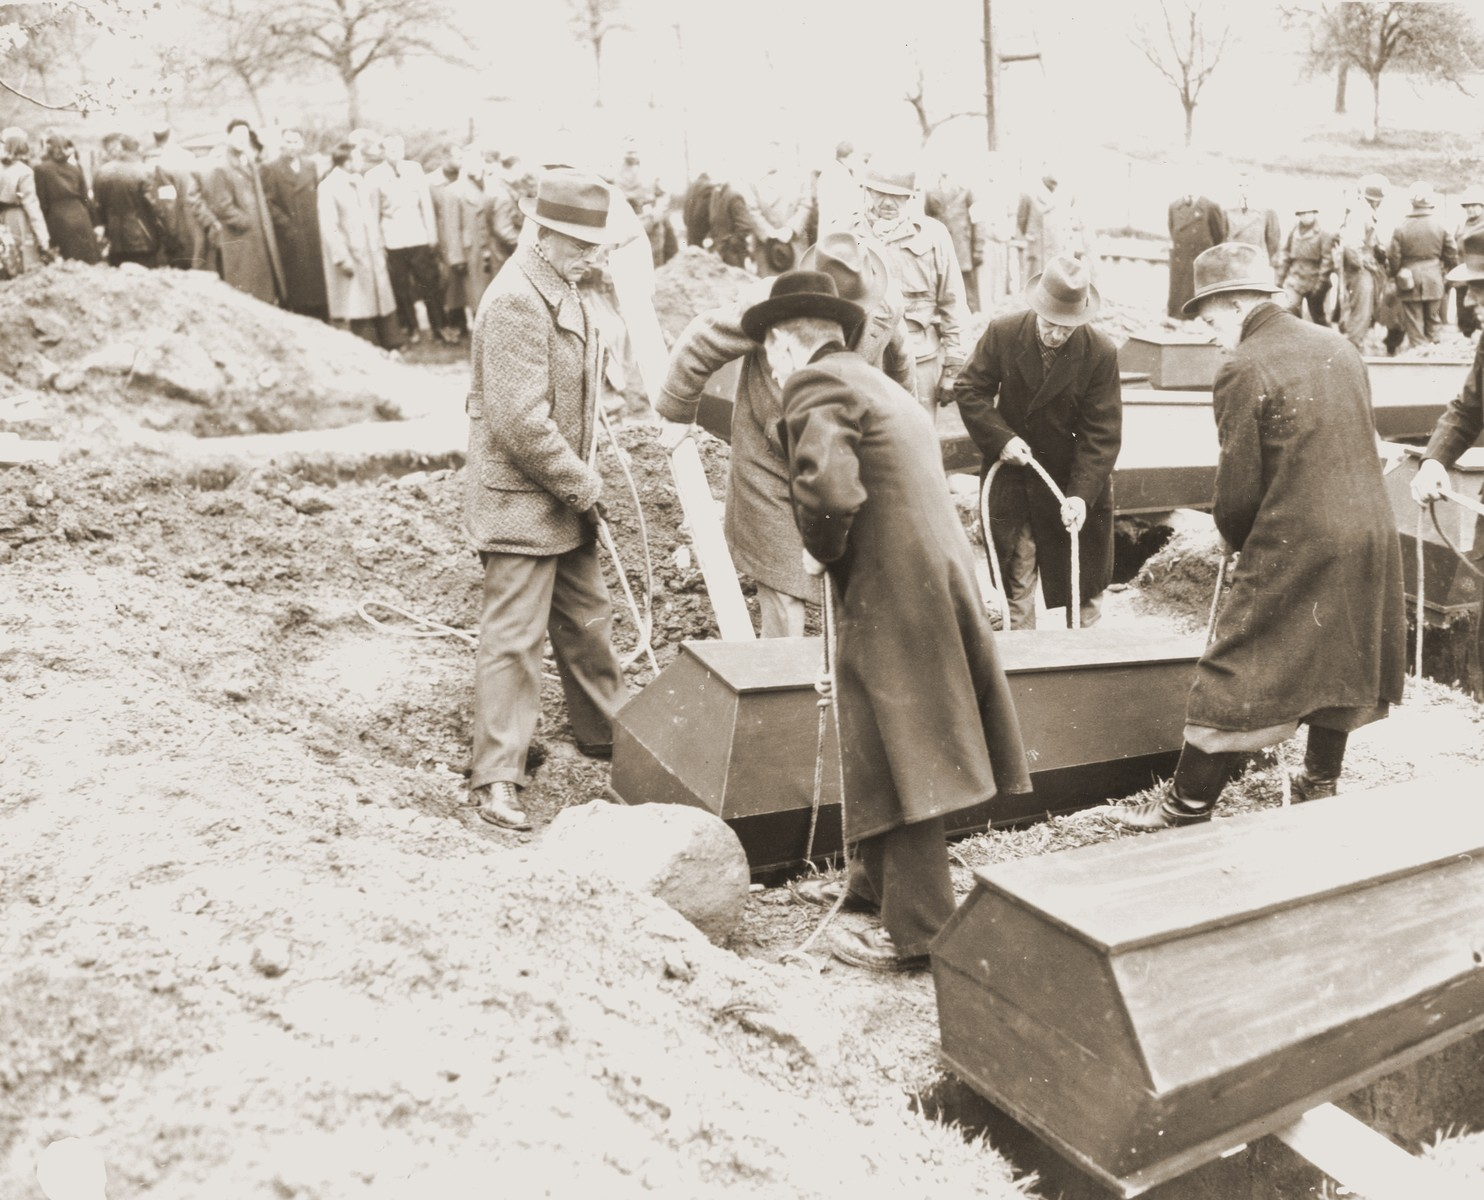 Under the direction of American soldiers, German civilians from Wilhelmshoehe lower a coffin into a grave.  The victim was one of many Italians shot and buried in a mass grave by the Gestapo on March 31, 1945.